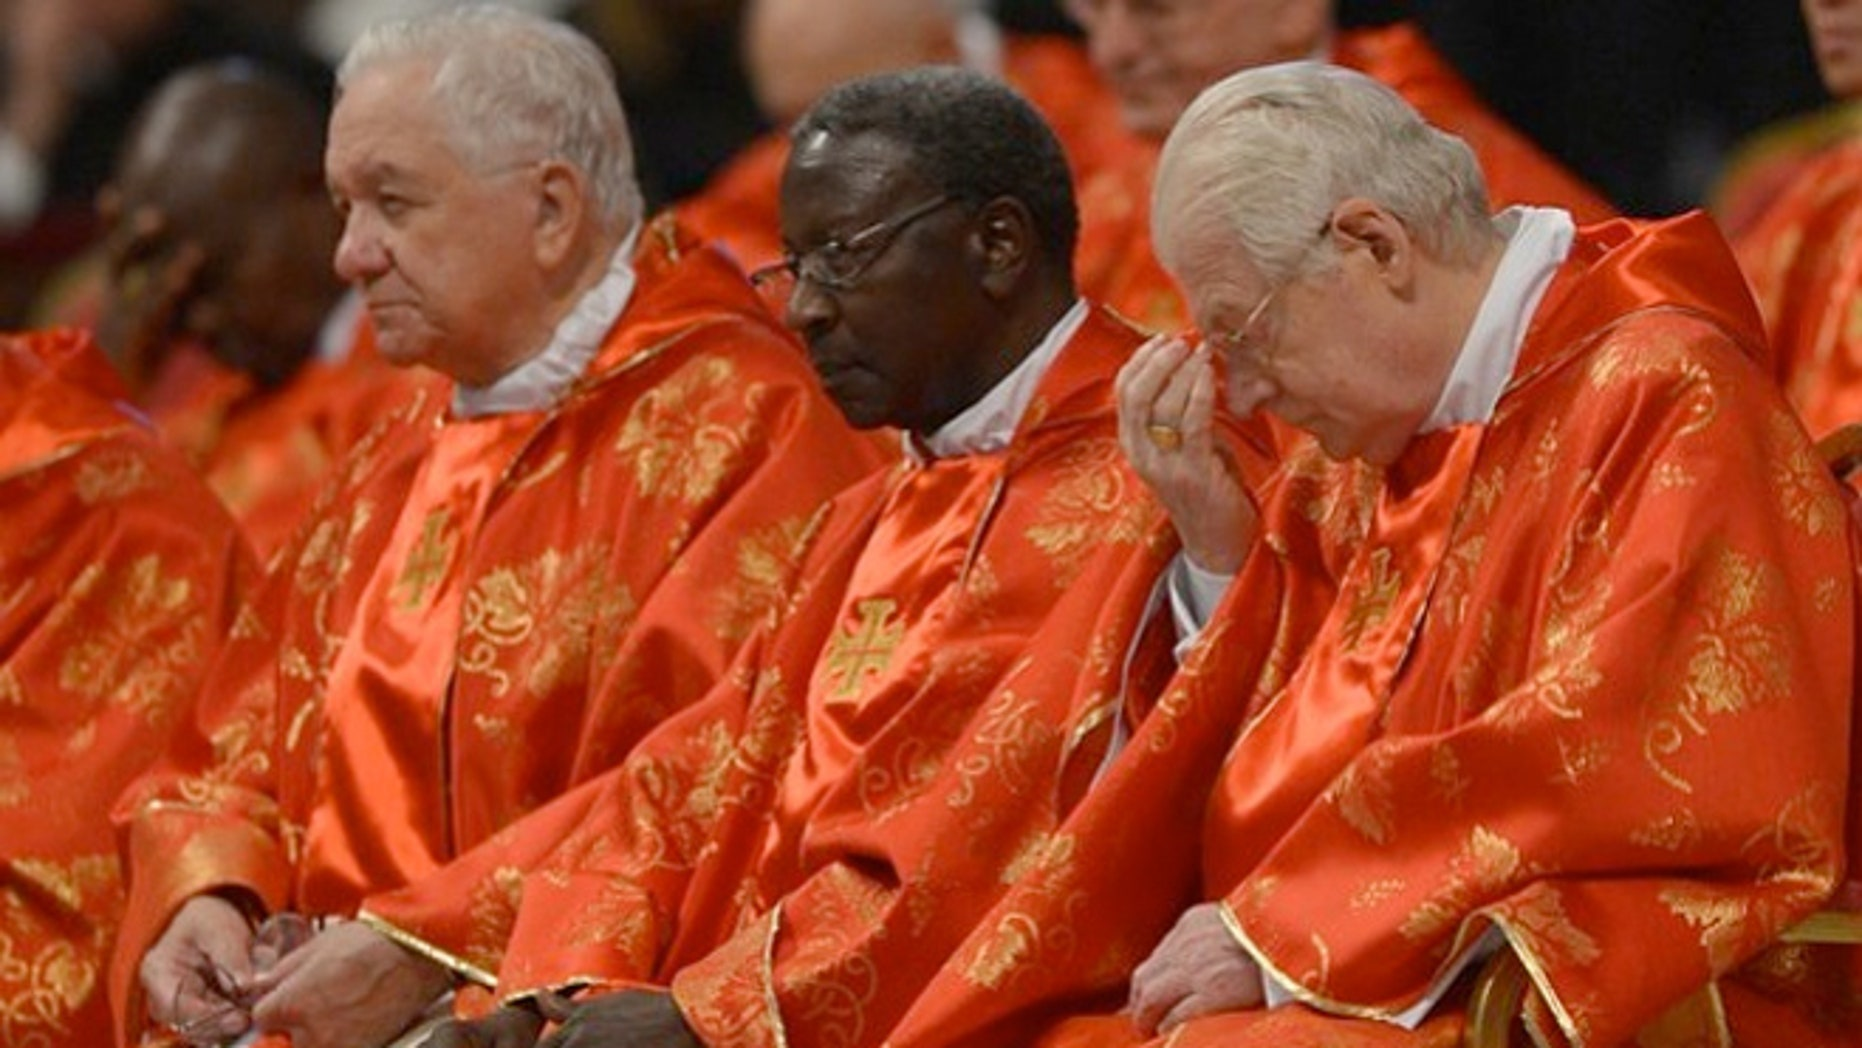 Senegalese cardinal Theodore-Adrien Sarr (C) and Italian cardinal Angelo Scola (R) were served simple meals during their deliberation over the next Pope.